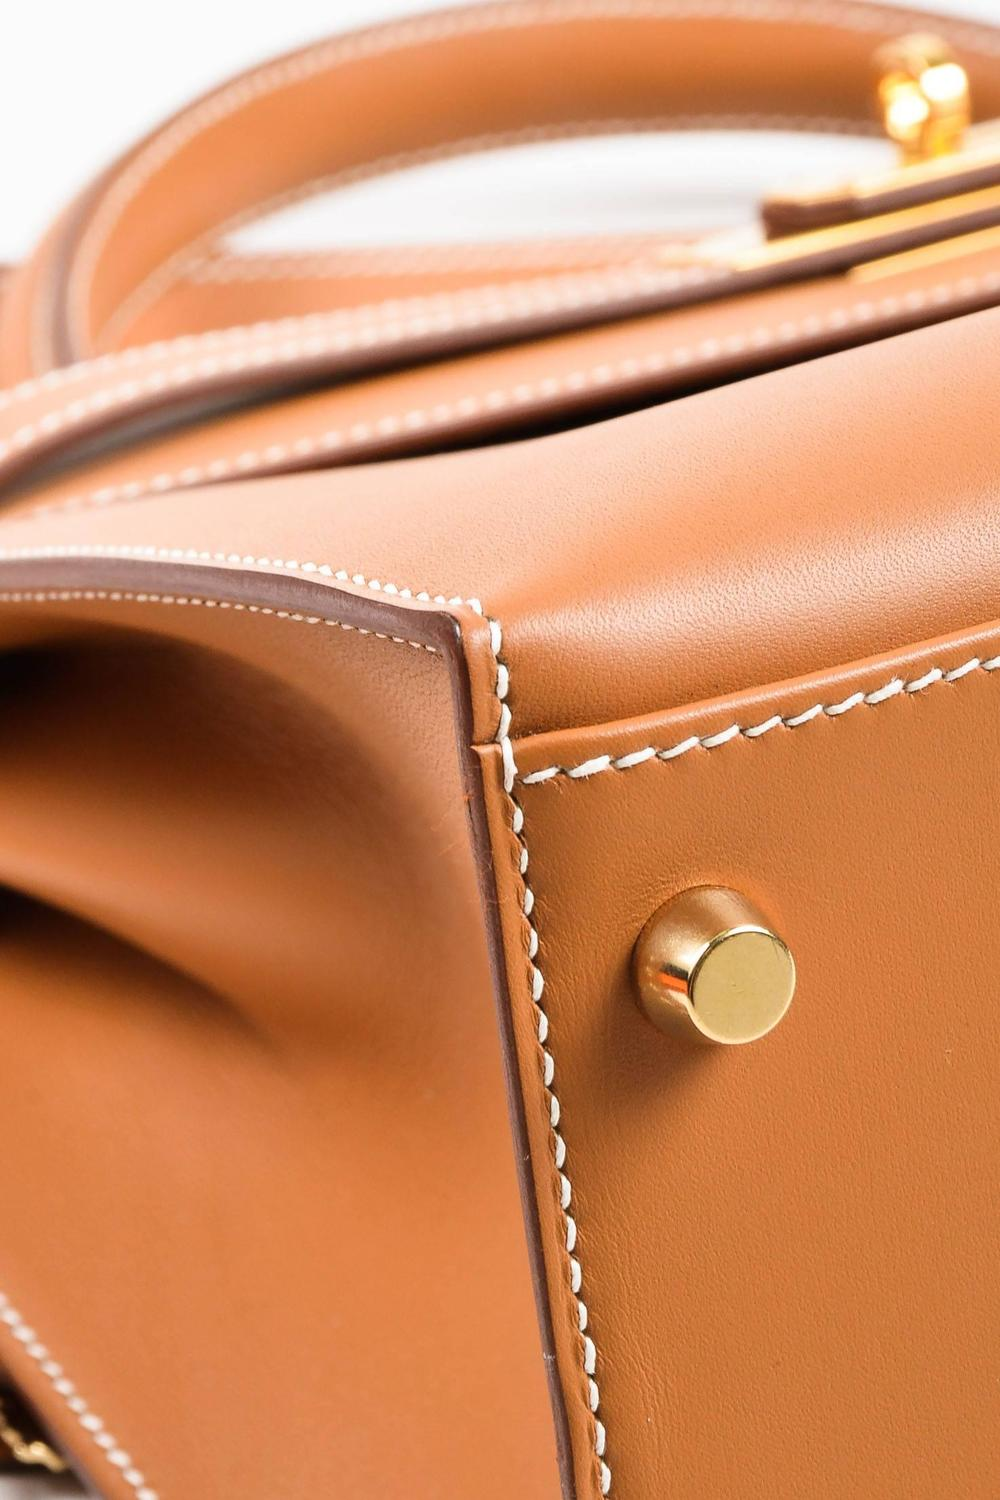 hermes leather bag - Hermes NIB Natural Tan Chamonix Leather Gold Tone Hardware Kelly ...